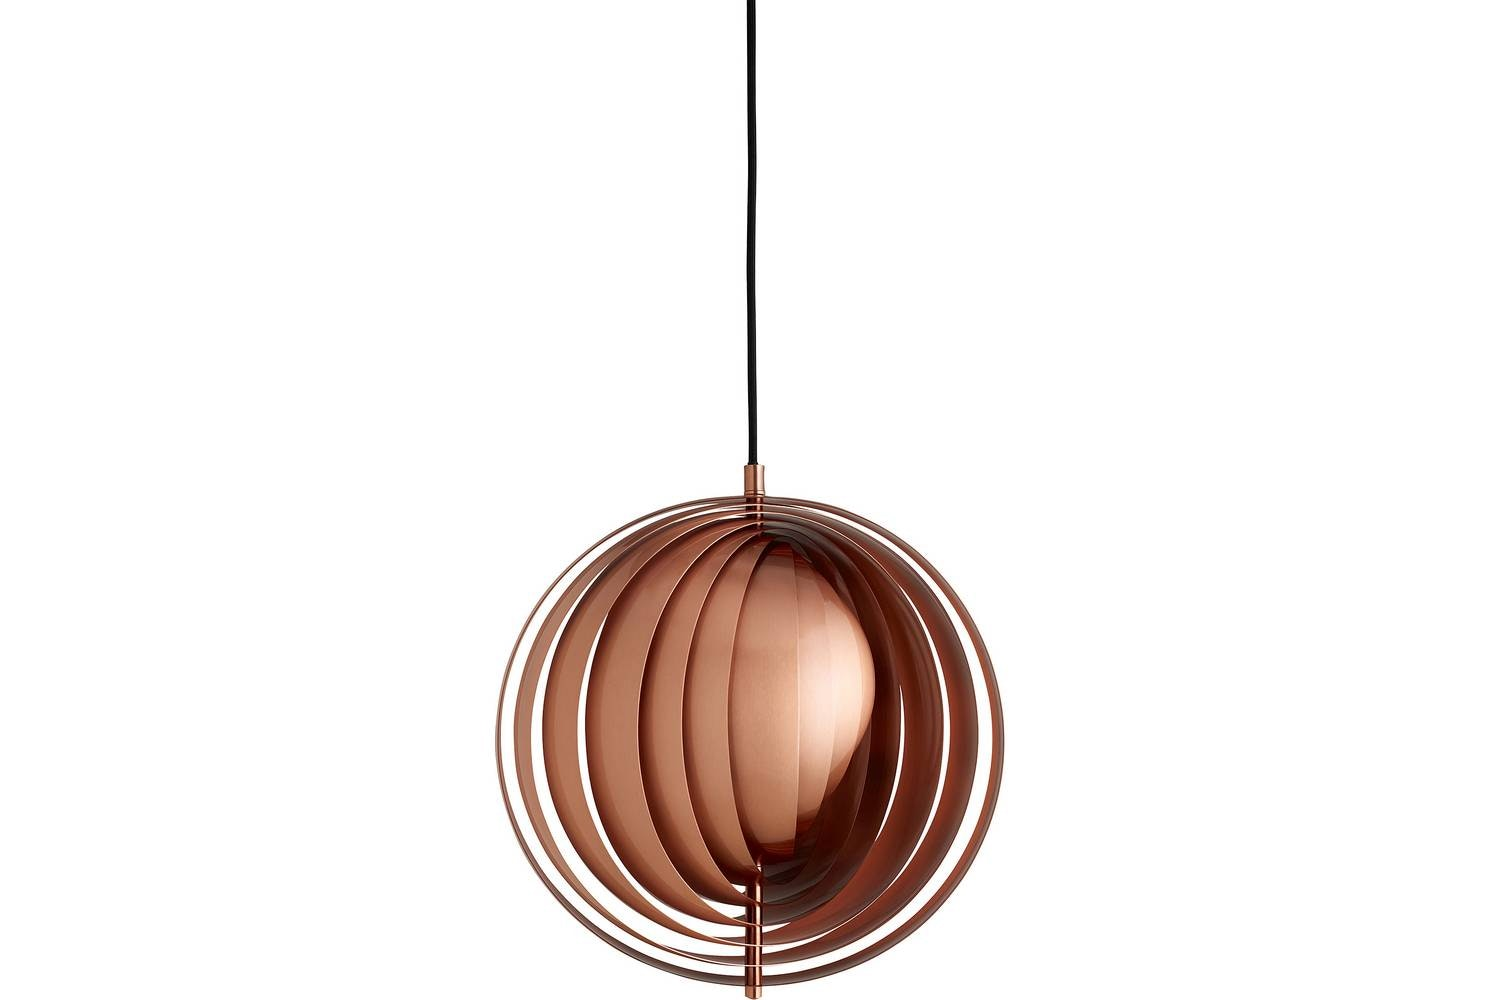 Moon Small Suspension Lamp in Copper by Verner Panton for Verpan